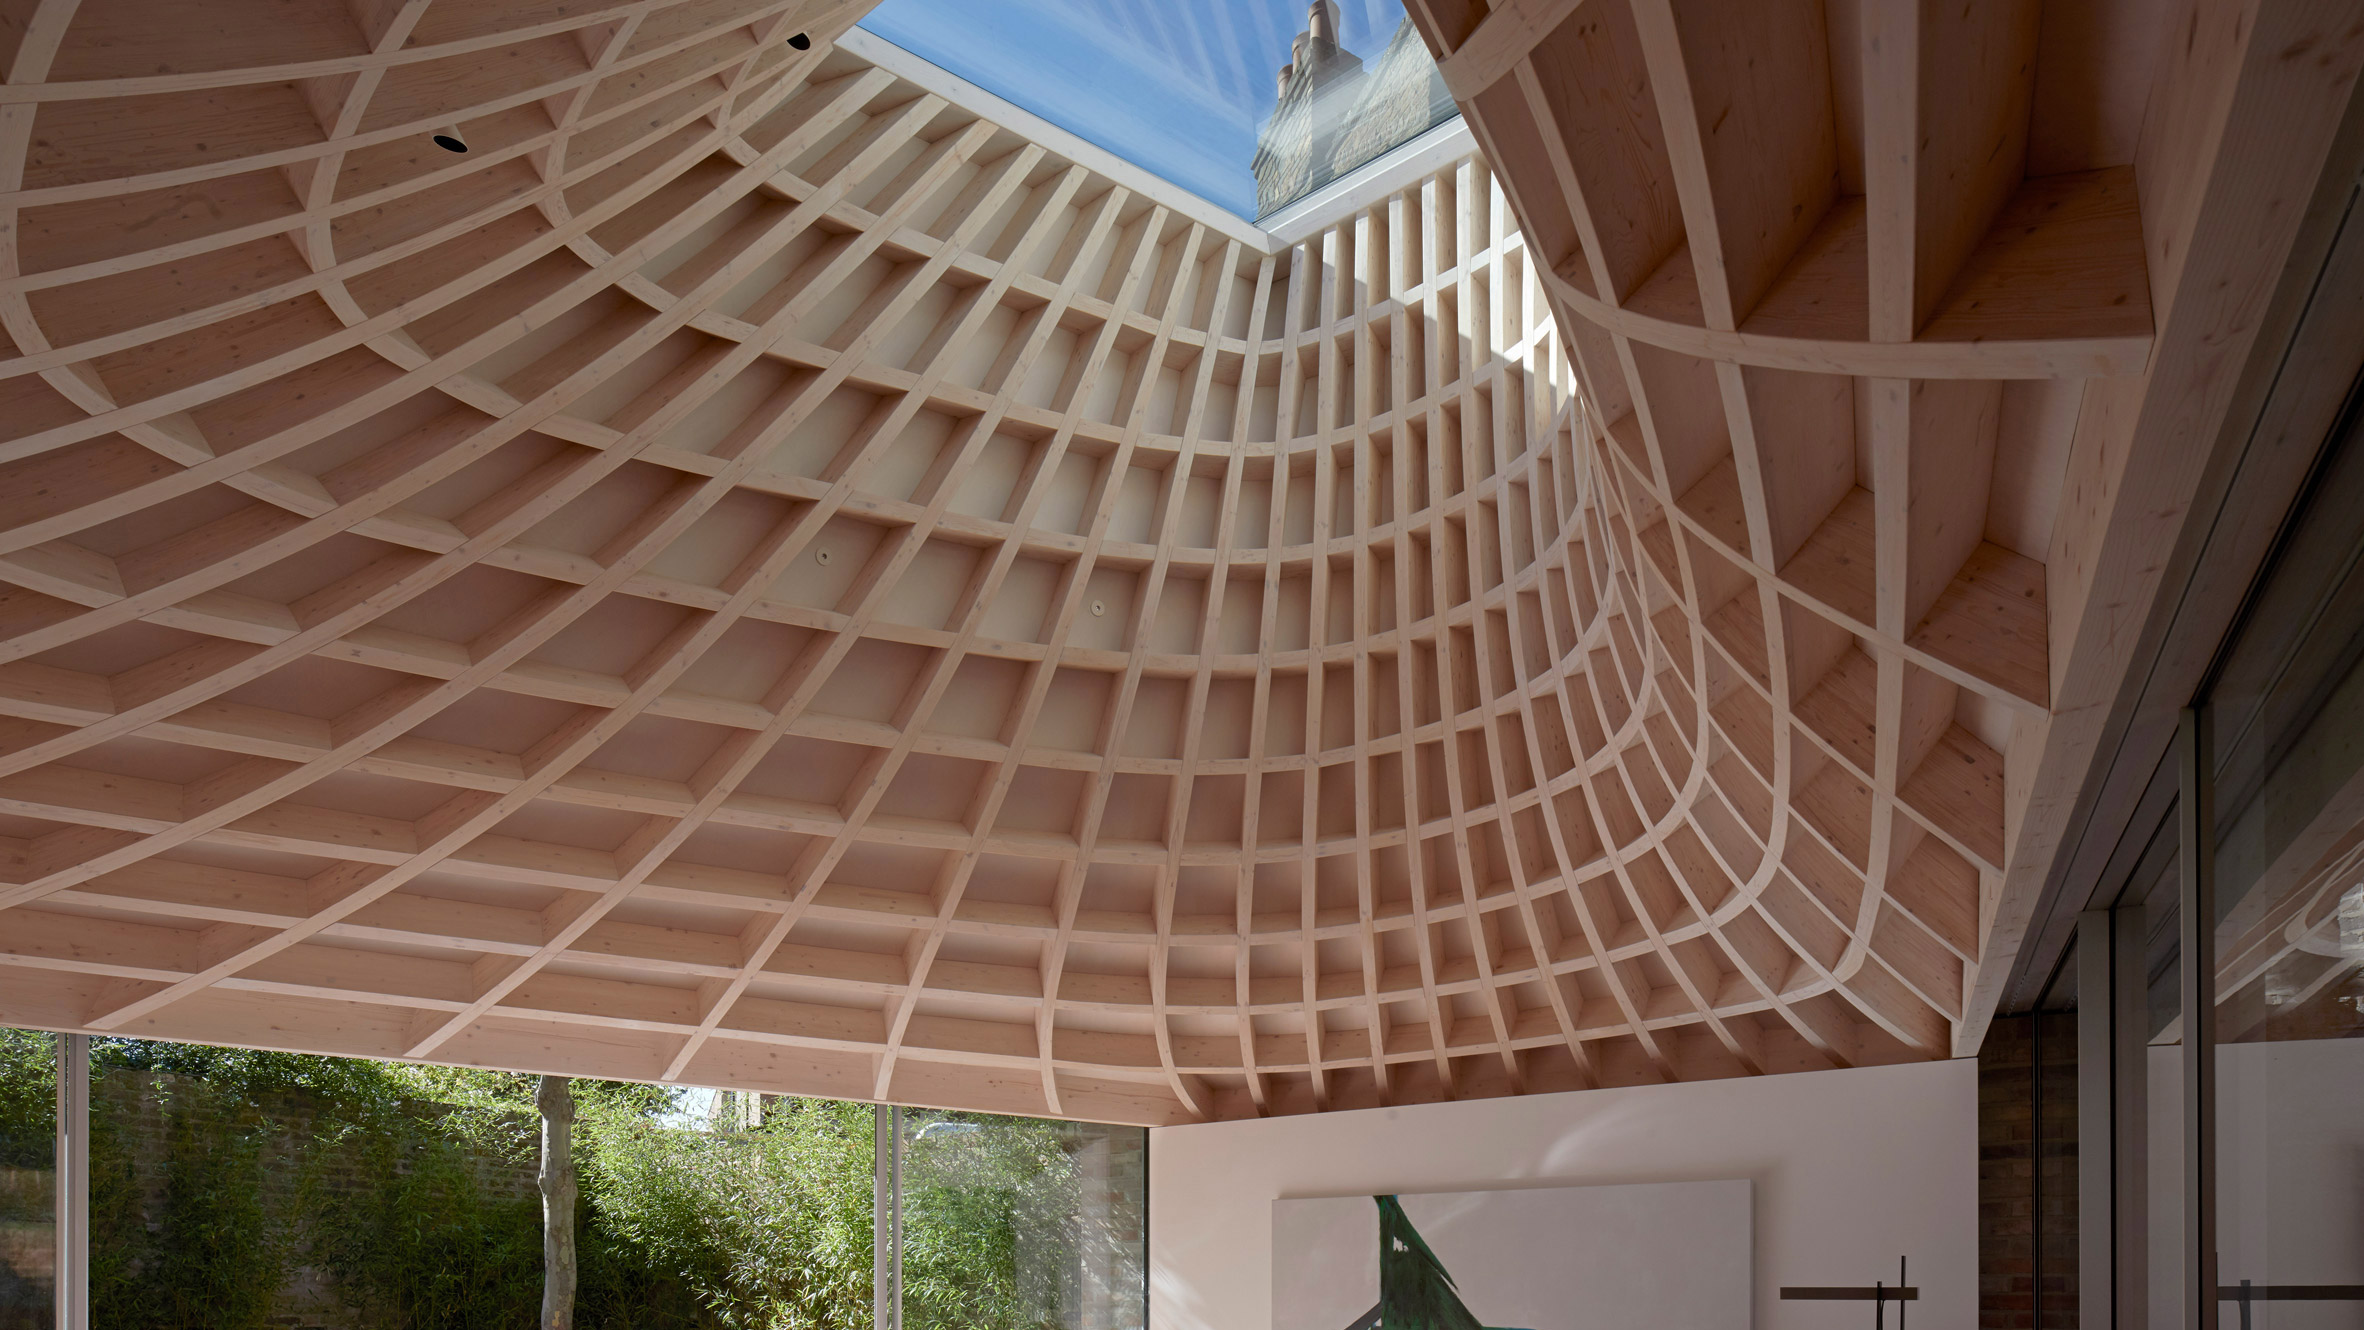 House in a Garden, London, by Gianni Botsford Architects